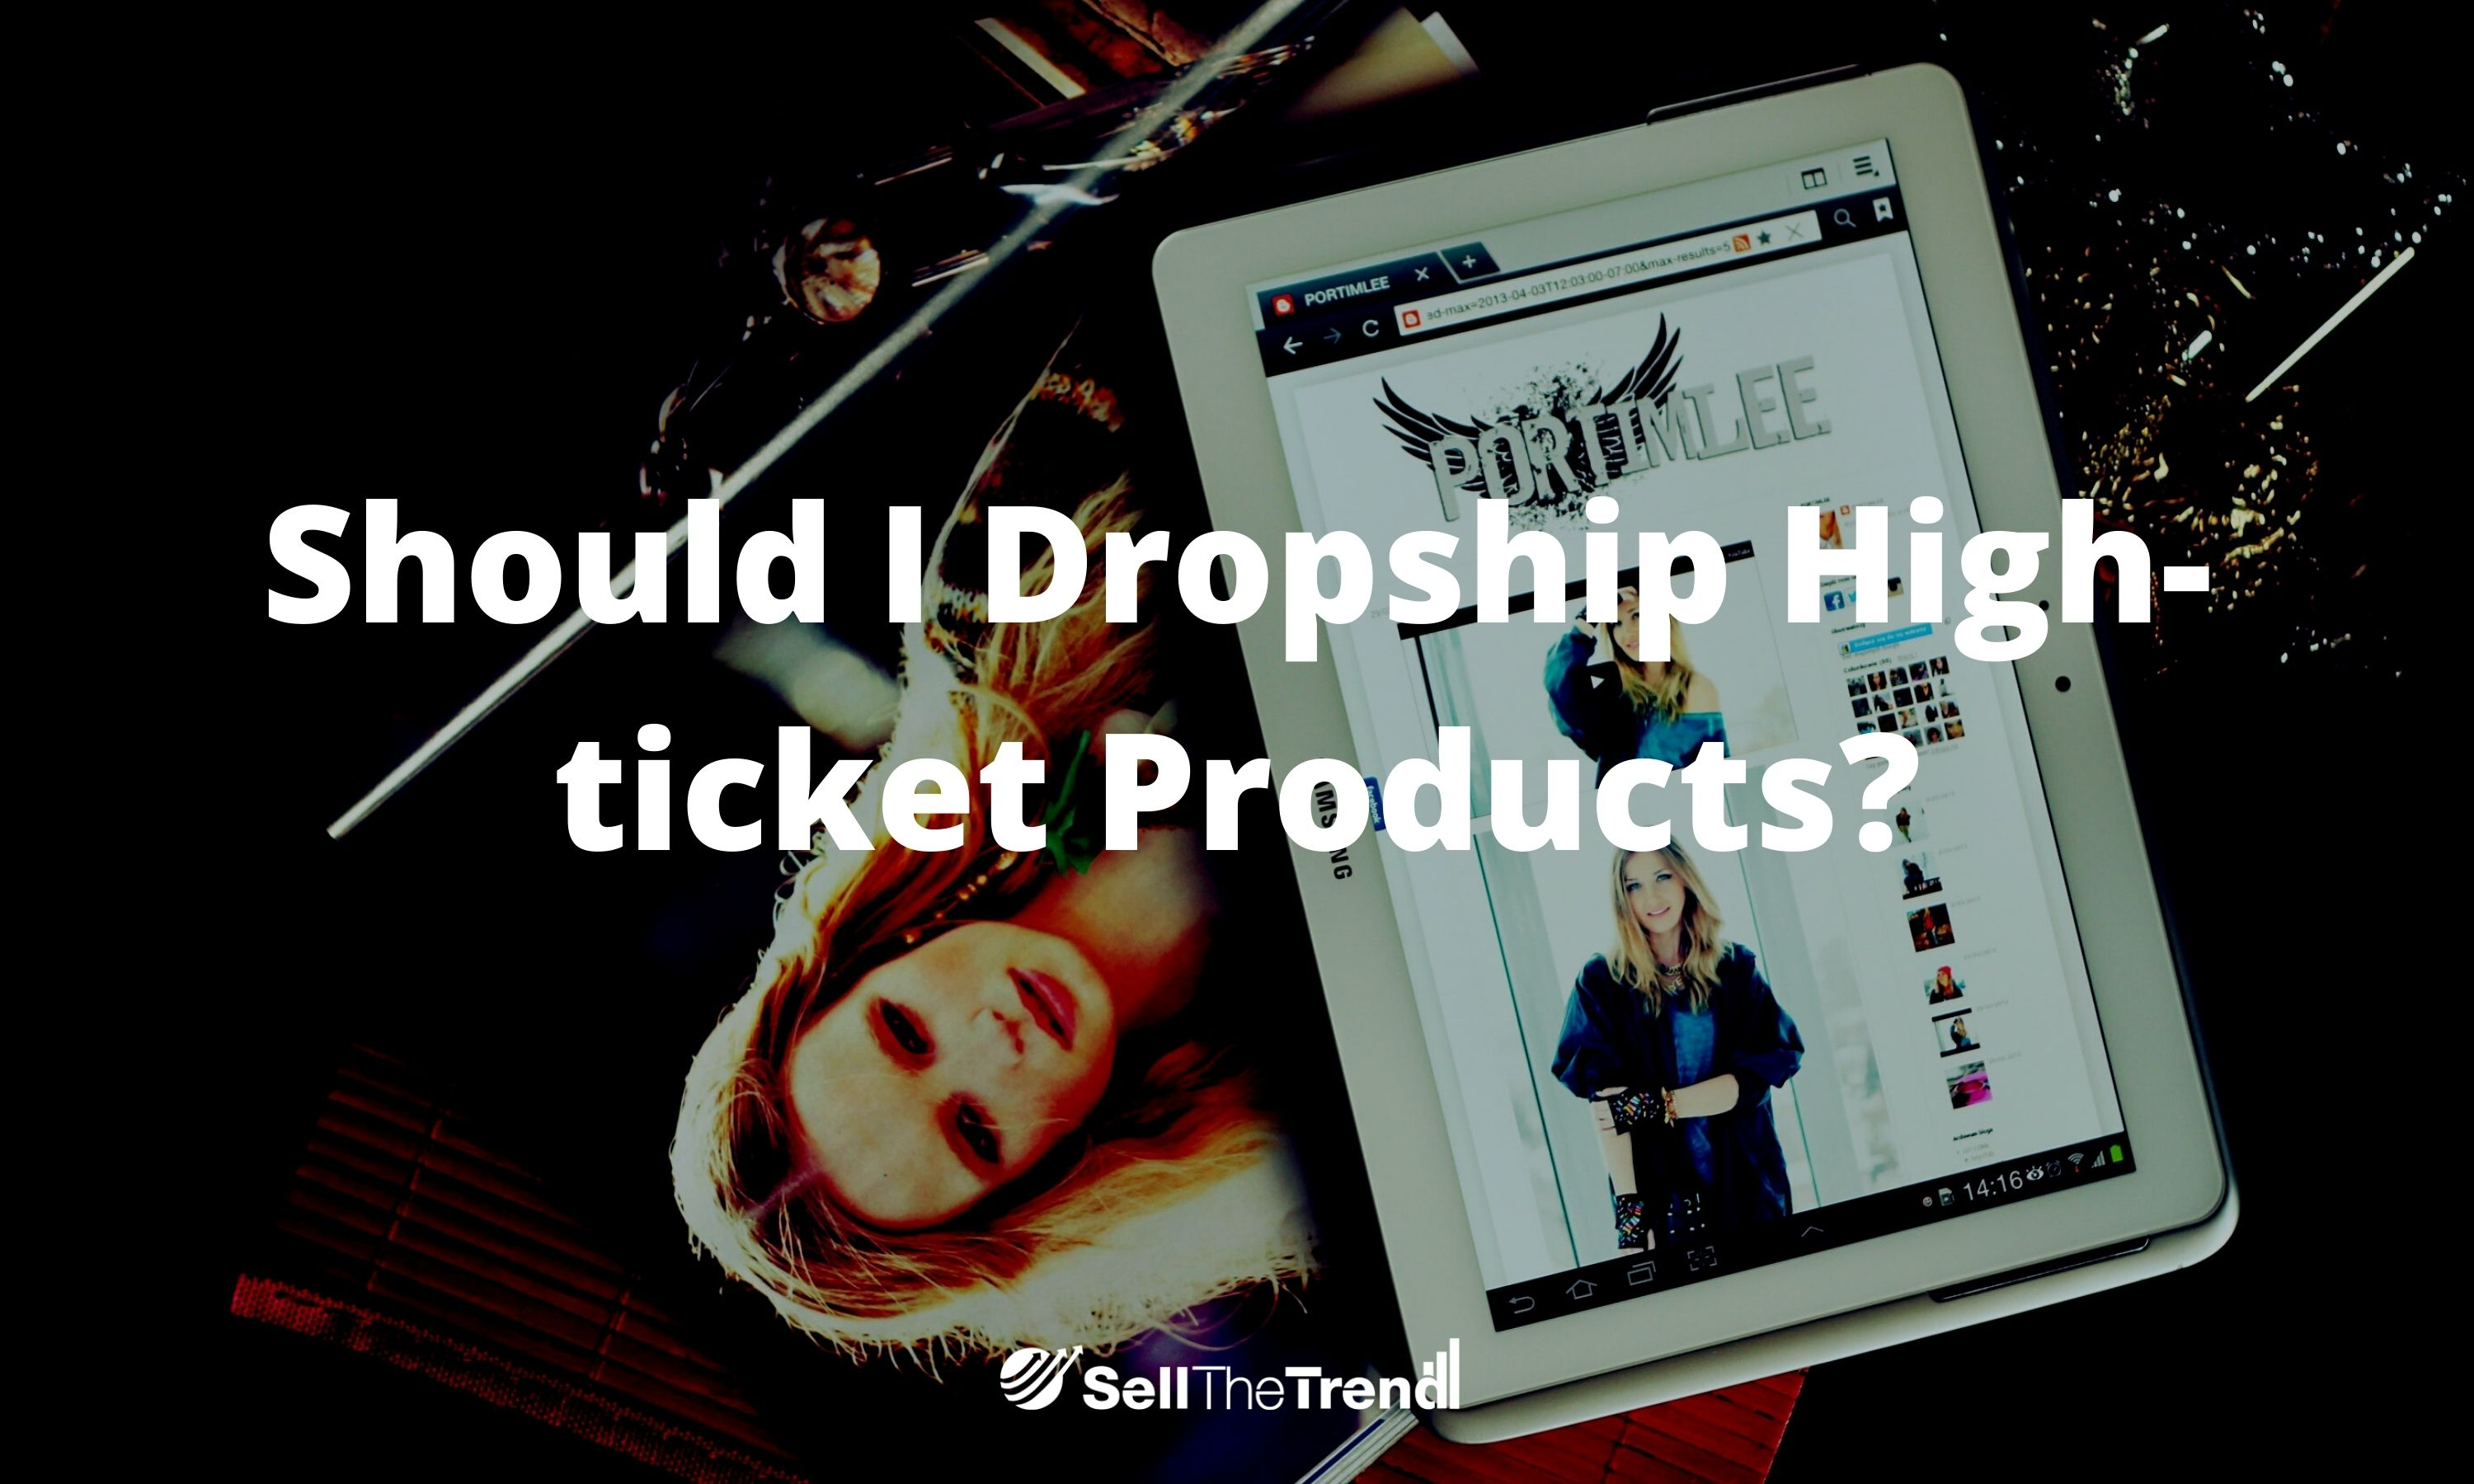 Should I Dropship High-ticket Products?